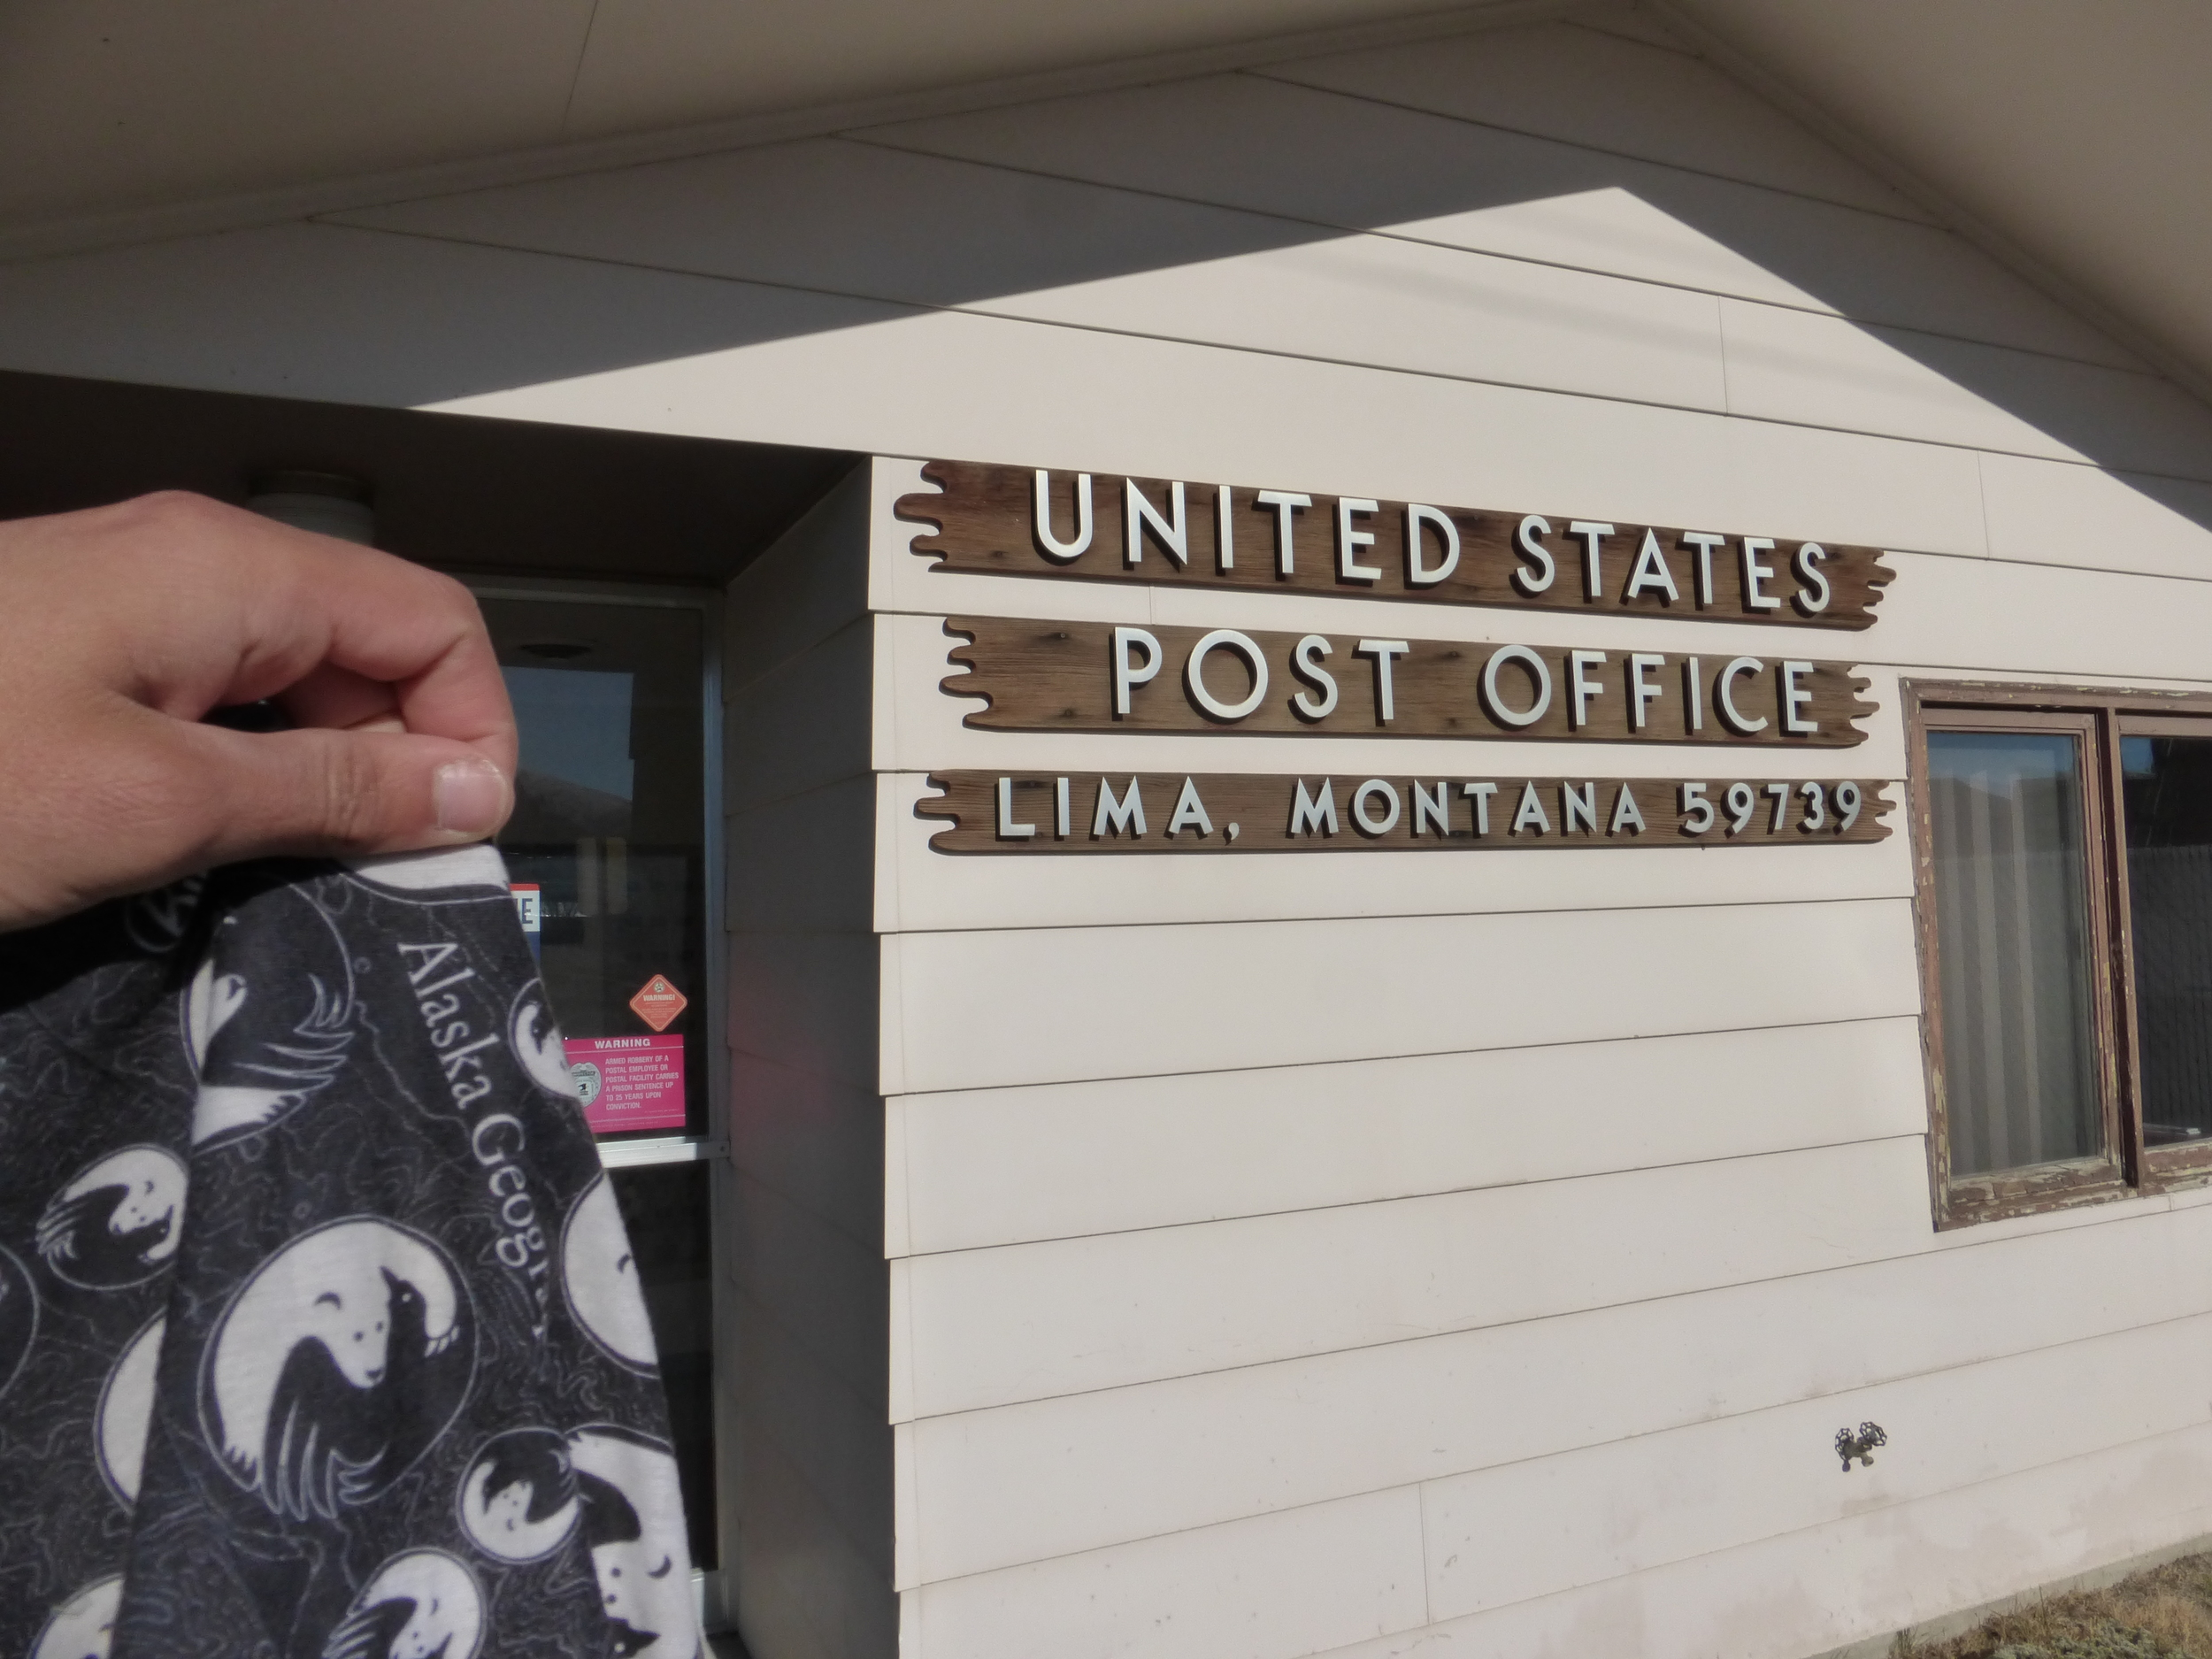 So, by now you probably know that I move pretty slow. But do you know what's slower than me? United States Postal Service! I outran it in Helena and now I had to wait in Lima so that I can get my buff!